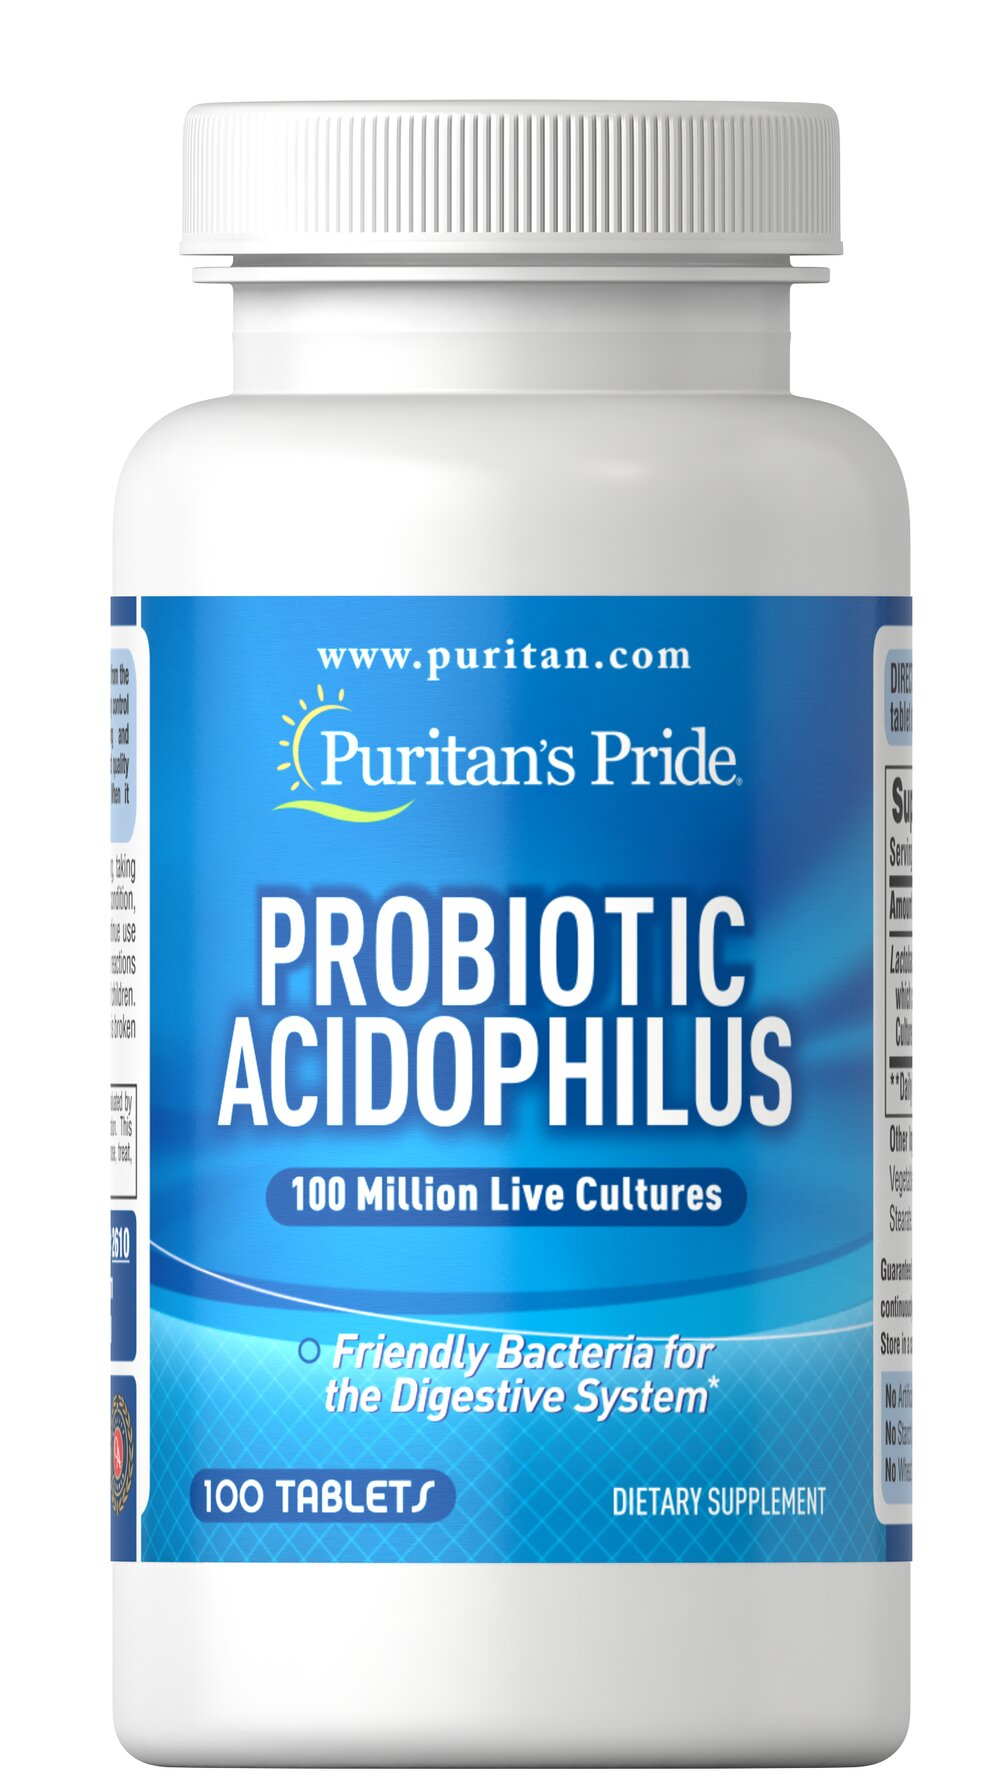 Probiotic Acidophilus <p>Acidophilus is a friendly bacteria for digestive system and supports overall well-being.  ** Our Probiotic Acidophilus contains over 100 million active Lactobacillus Acidophilus (including the naturally occurring metabolic product produced by Lactobacilli) at the time of manufacture.</p> 100 Capsules  $8.99